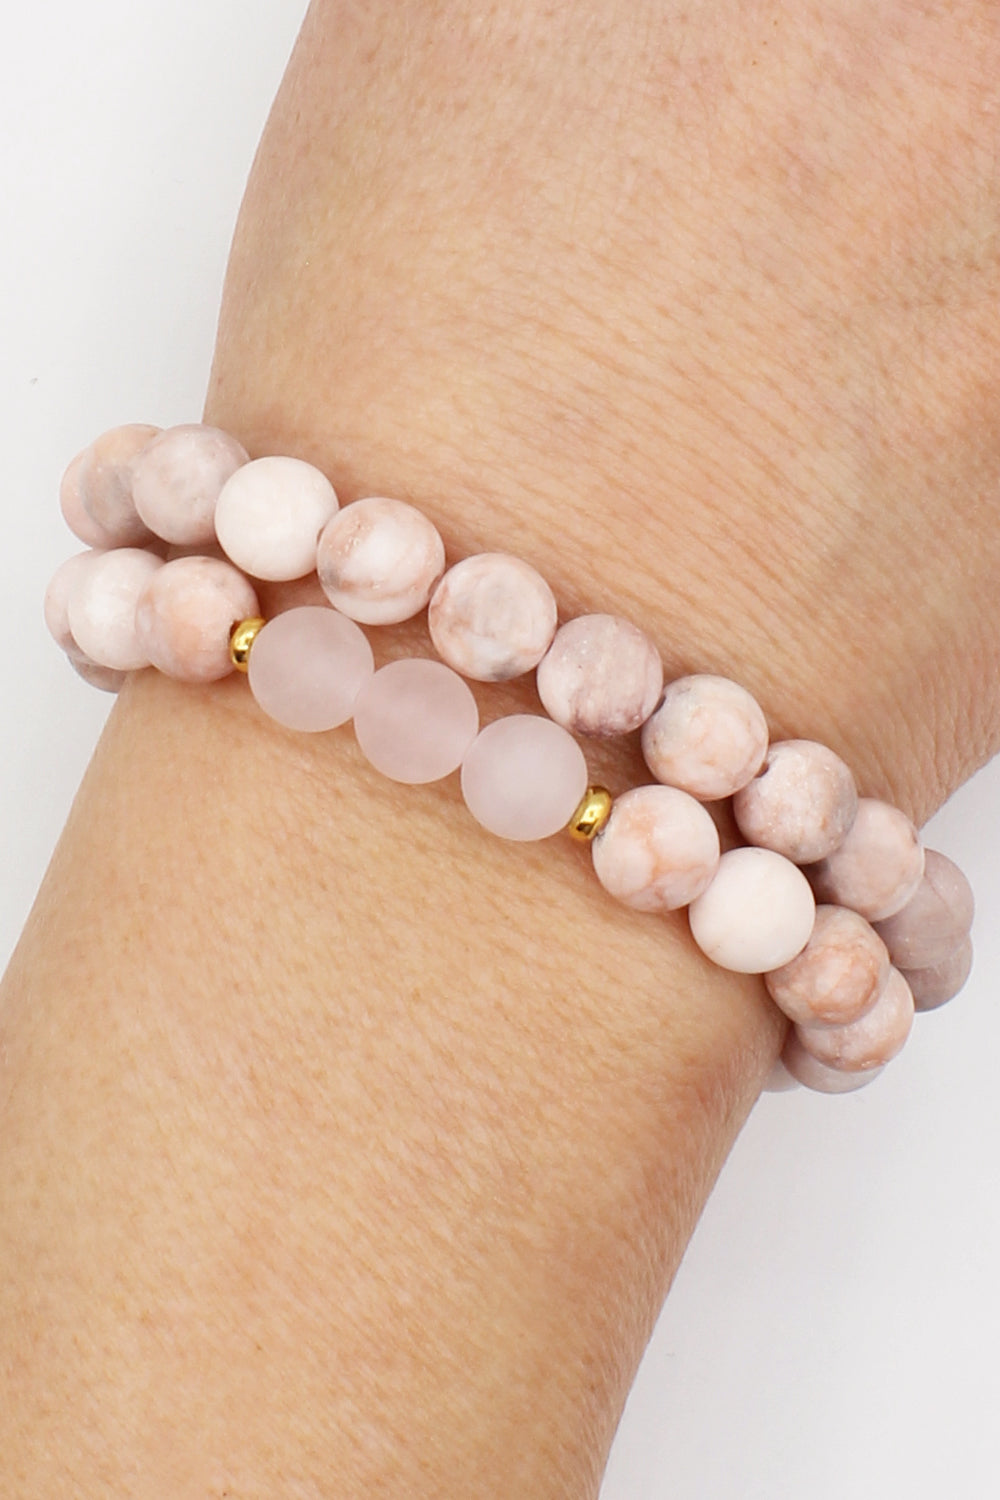 Flourish Stackable Mala Bracelets